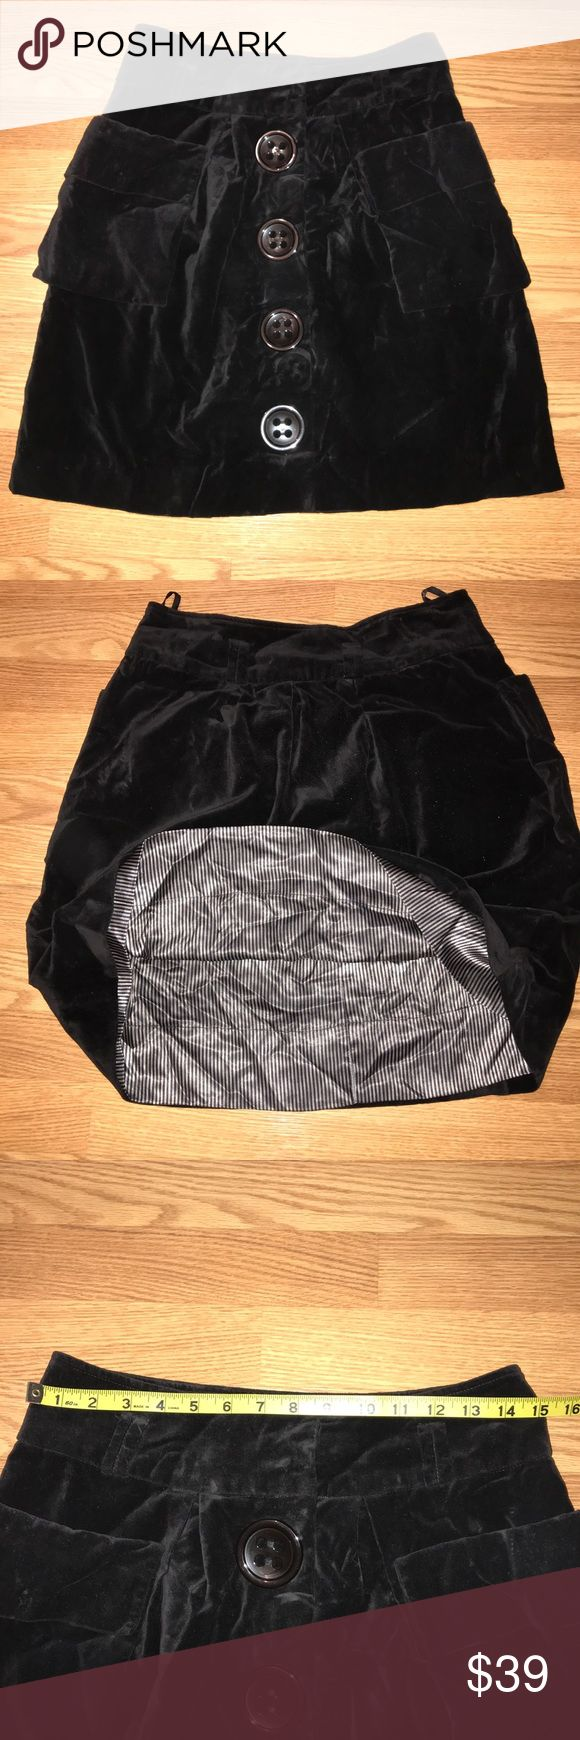 Anthropologie Elevenses Black Velvet Skirt Size 6 -excellent preowned condition -fully lined -large button detail of the front -two large front pockets -Supersoft luxe black velvet Bundle up; offers always welcome! Anthropologie Skirts Midi